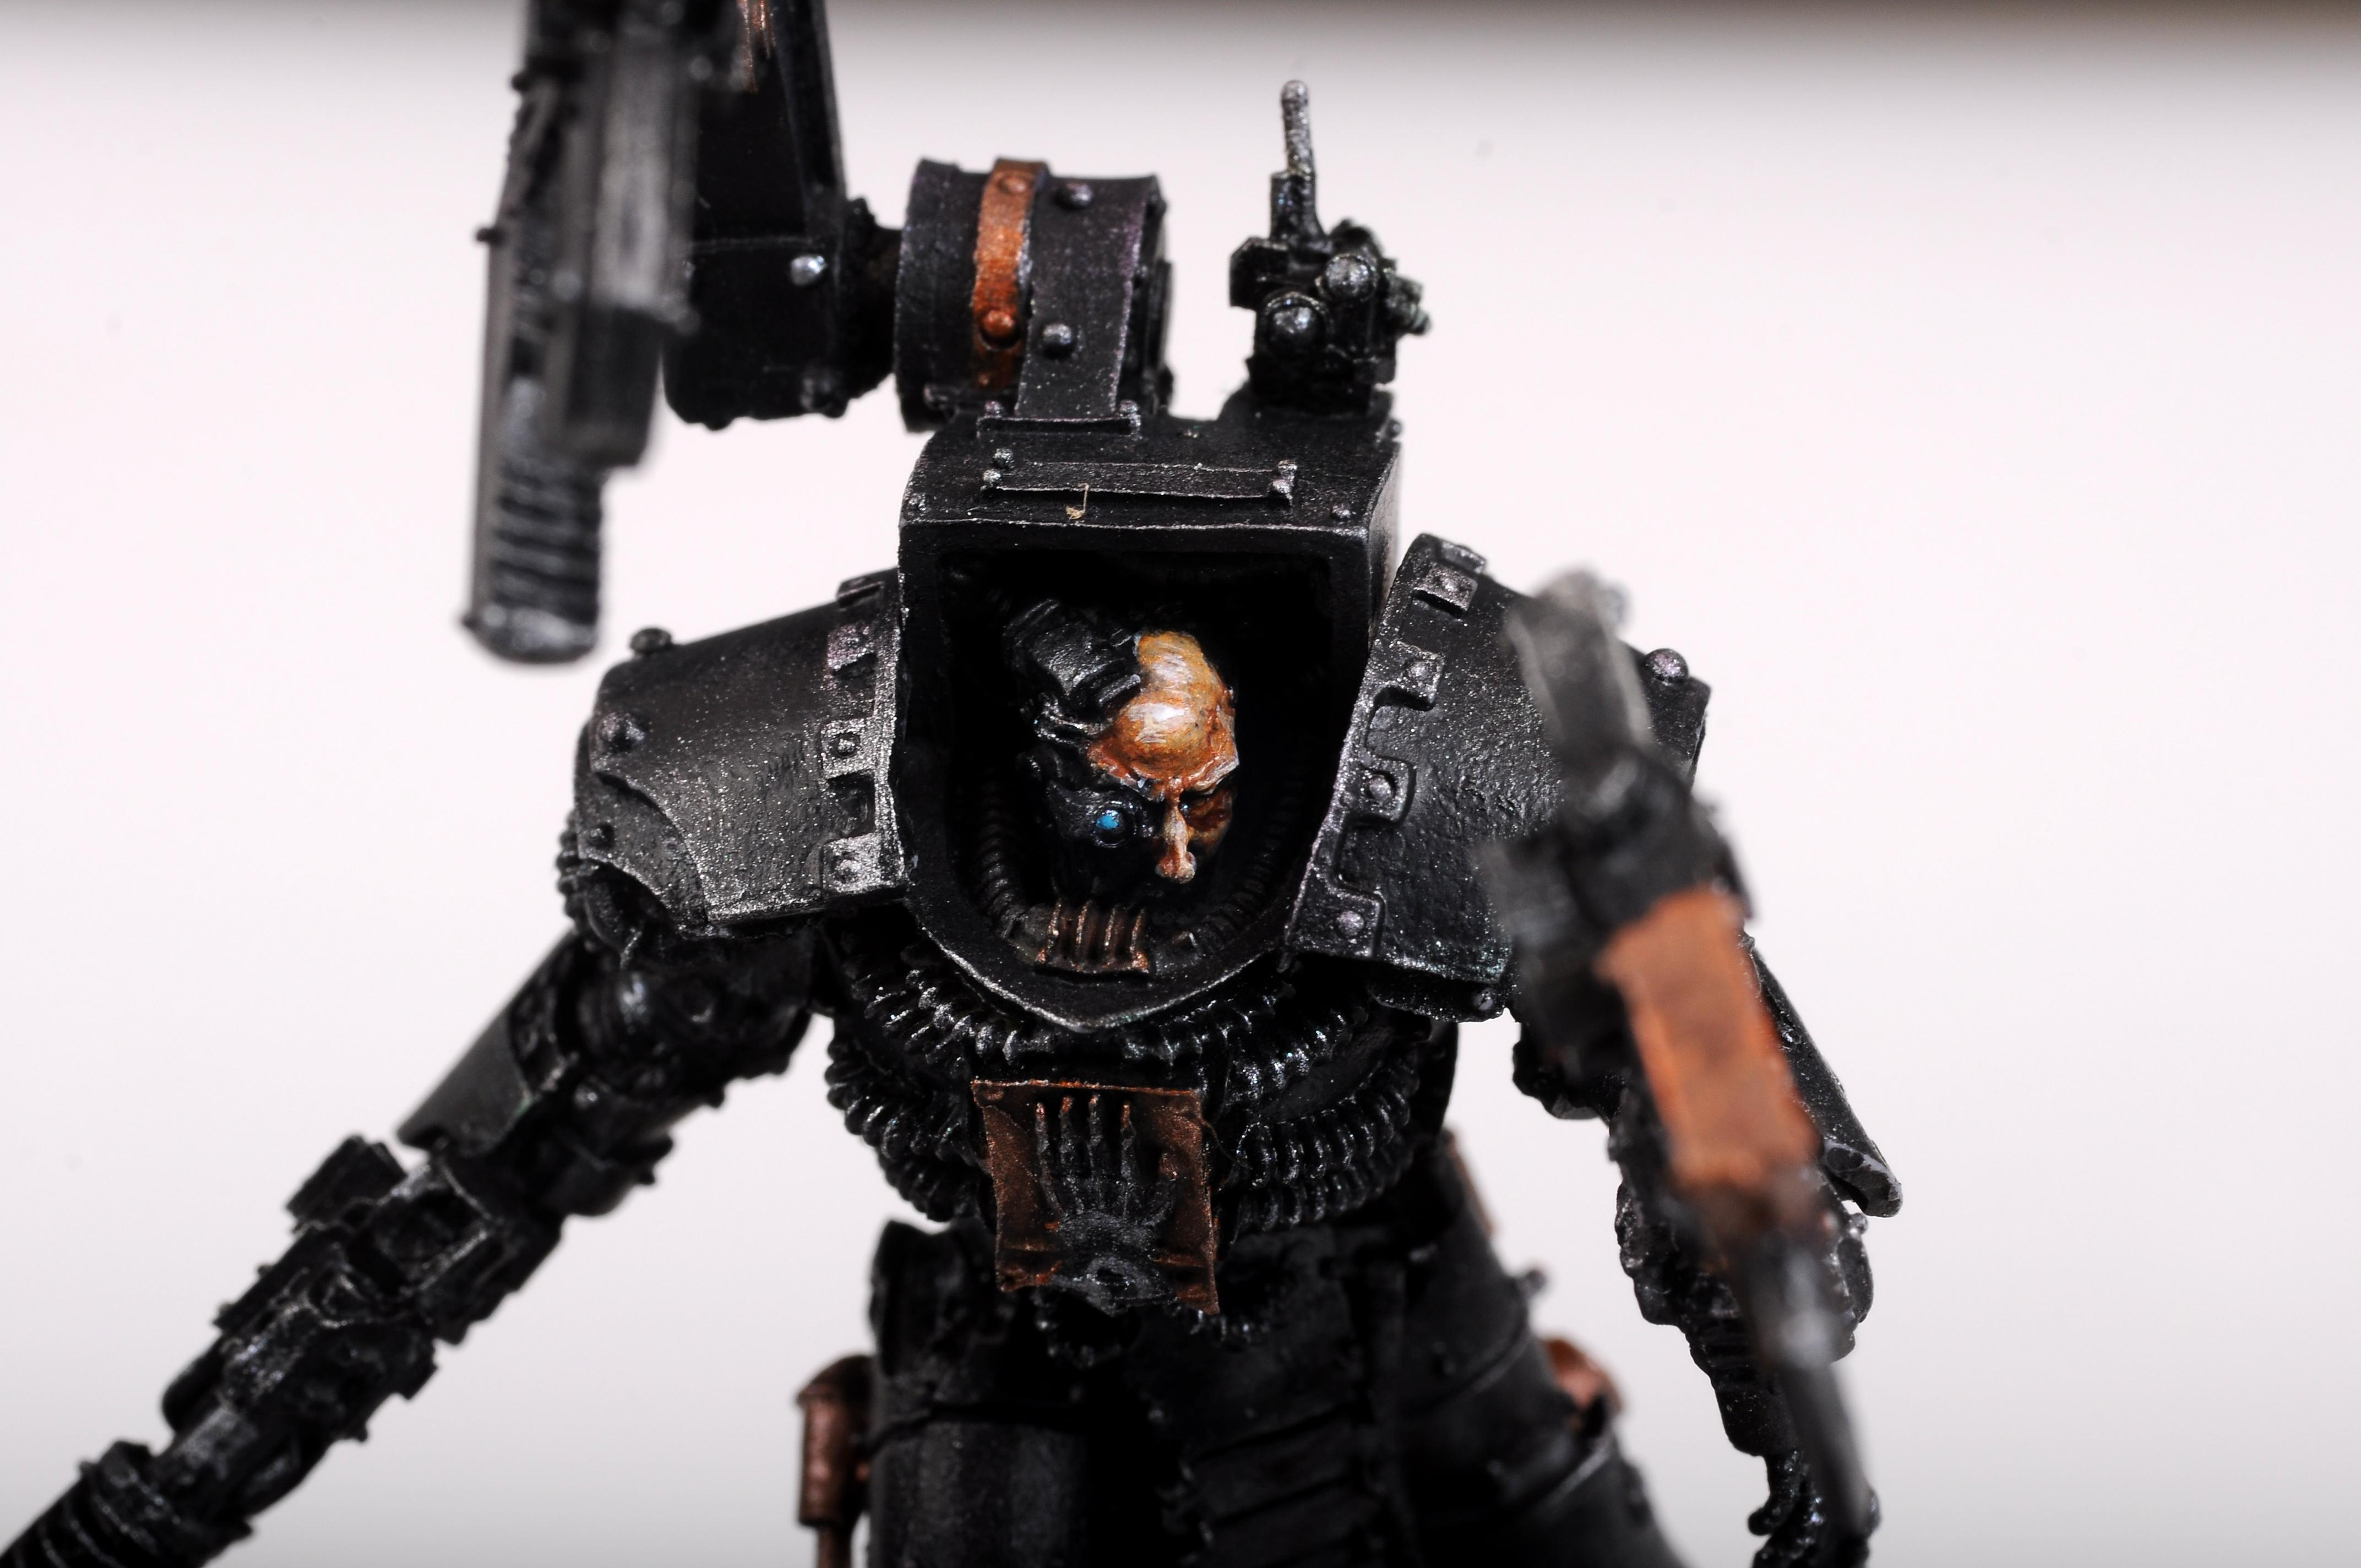 Forge World, Iron Father, Iron Hands, Iron Hands Iron Father, Servo Arm